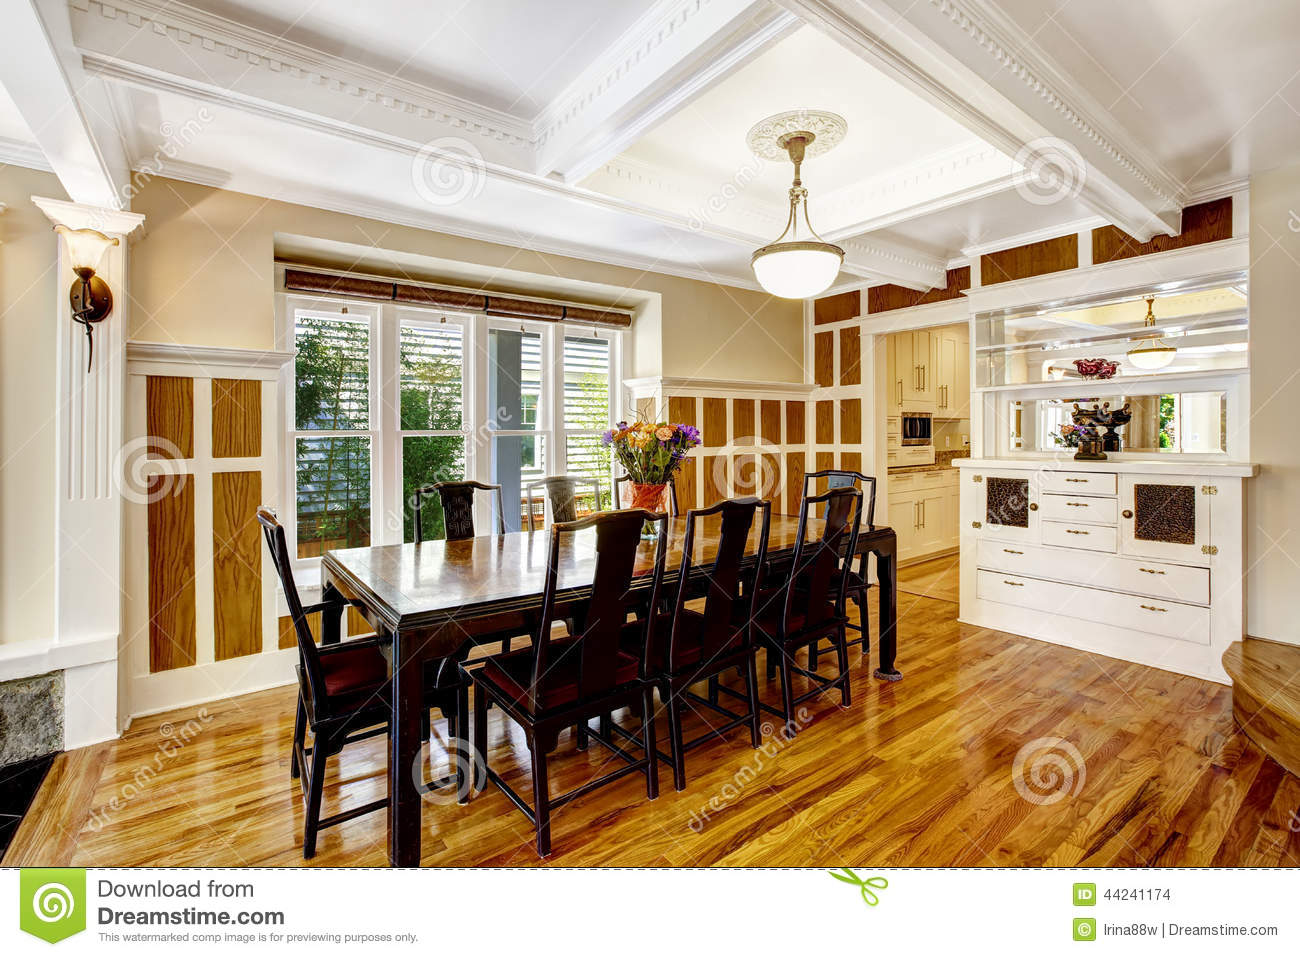 Image Result For Wall Paint To Go With Brown Furniture